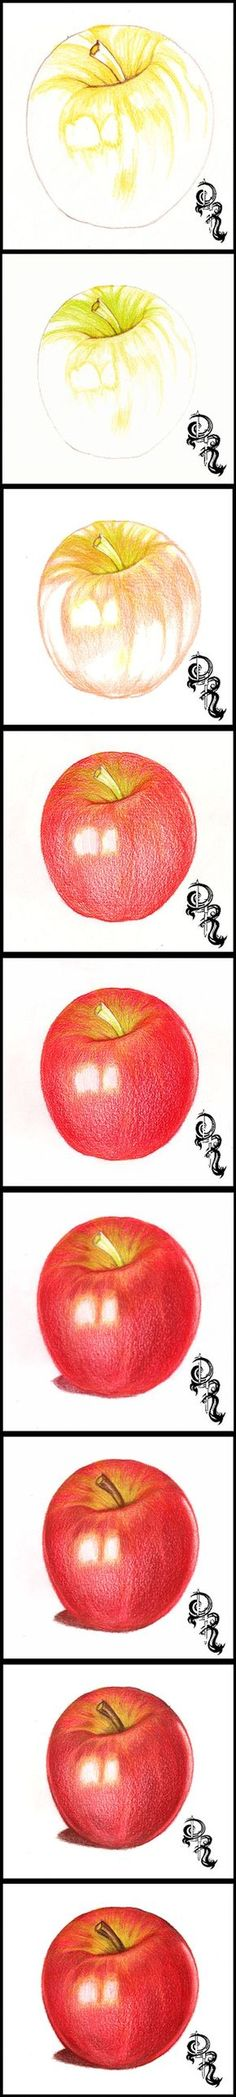 How to Draw an Apple with Colored Pencils. A step-by-step image of a colored pencil by Derrick Rathgeber. Click the image for full details instructions Drawing Lessons, Drawing Techniques, Art Lessons, Drawing Tips, Pencil Drawings, Art Drawings, Horse Drawings, Colored Pencil Techniques, Colored Pencil Tutorial